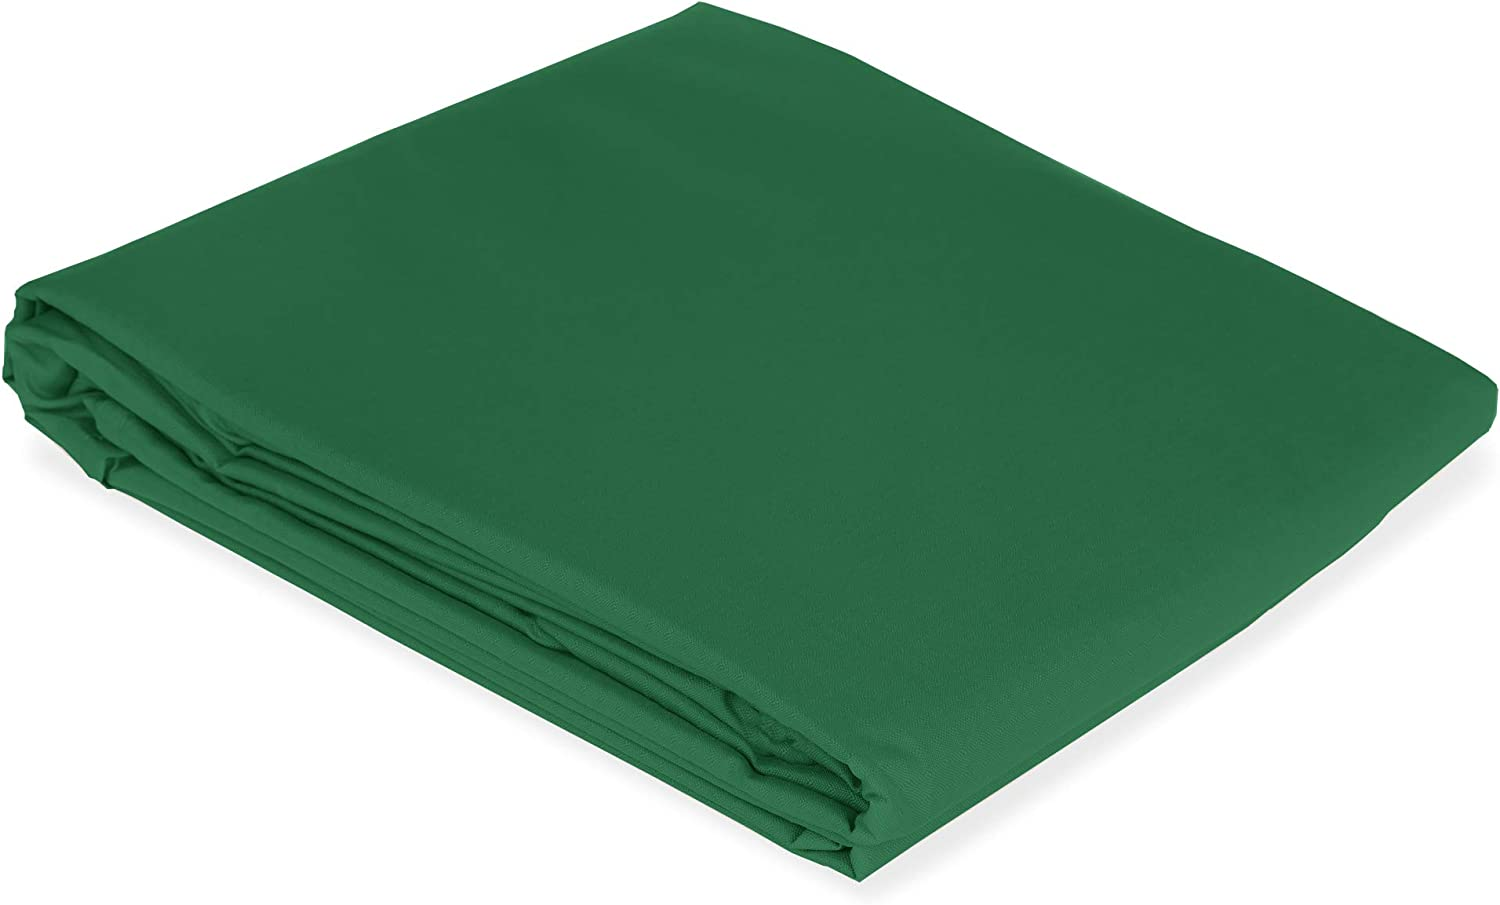 Garden Winds X-Large Universal Replacement Swing Canopy Top Cover- RipLock - Green